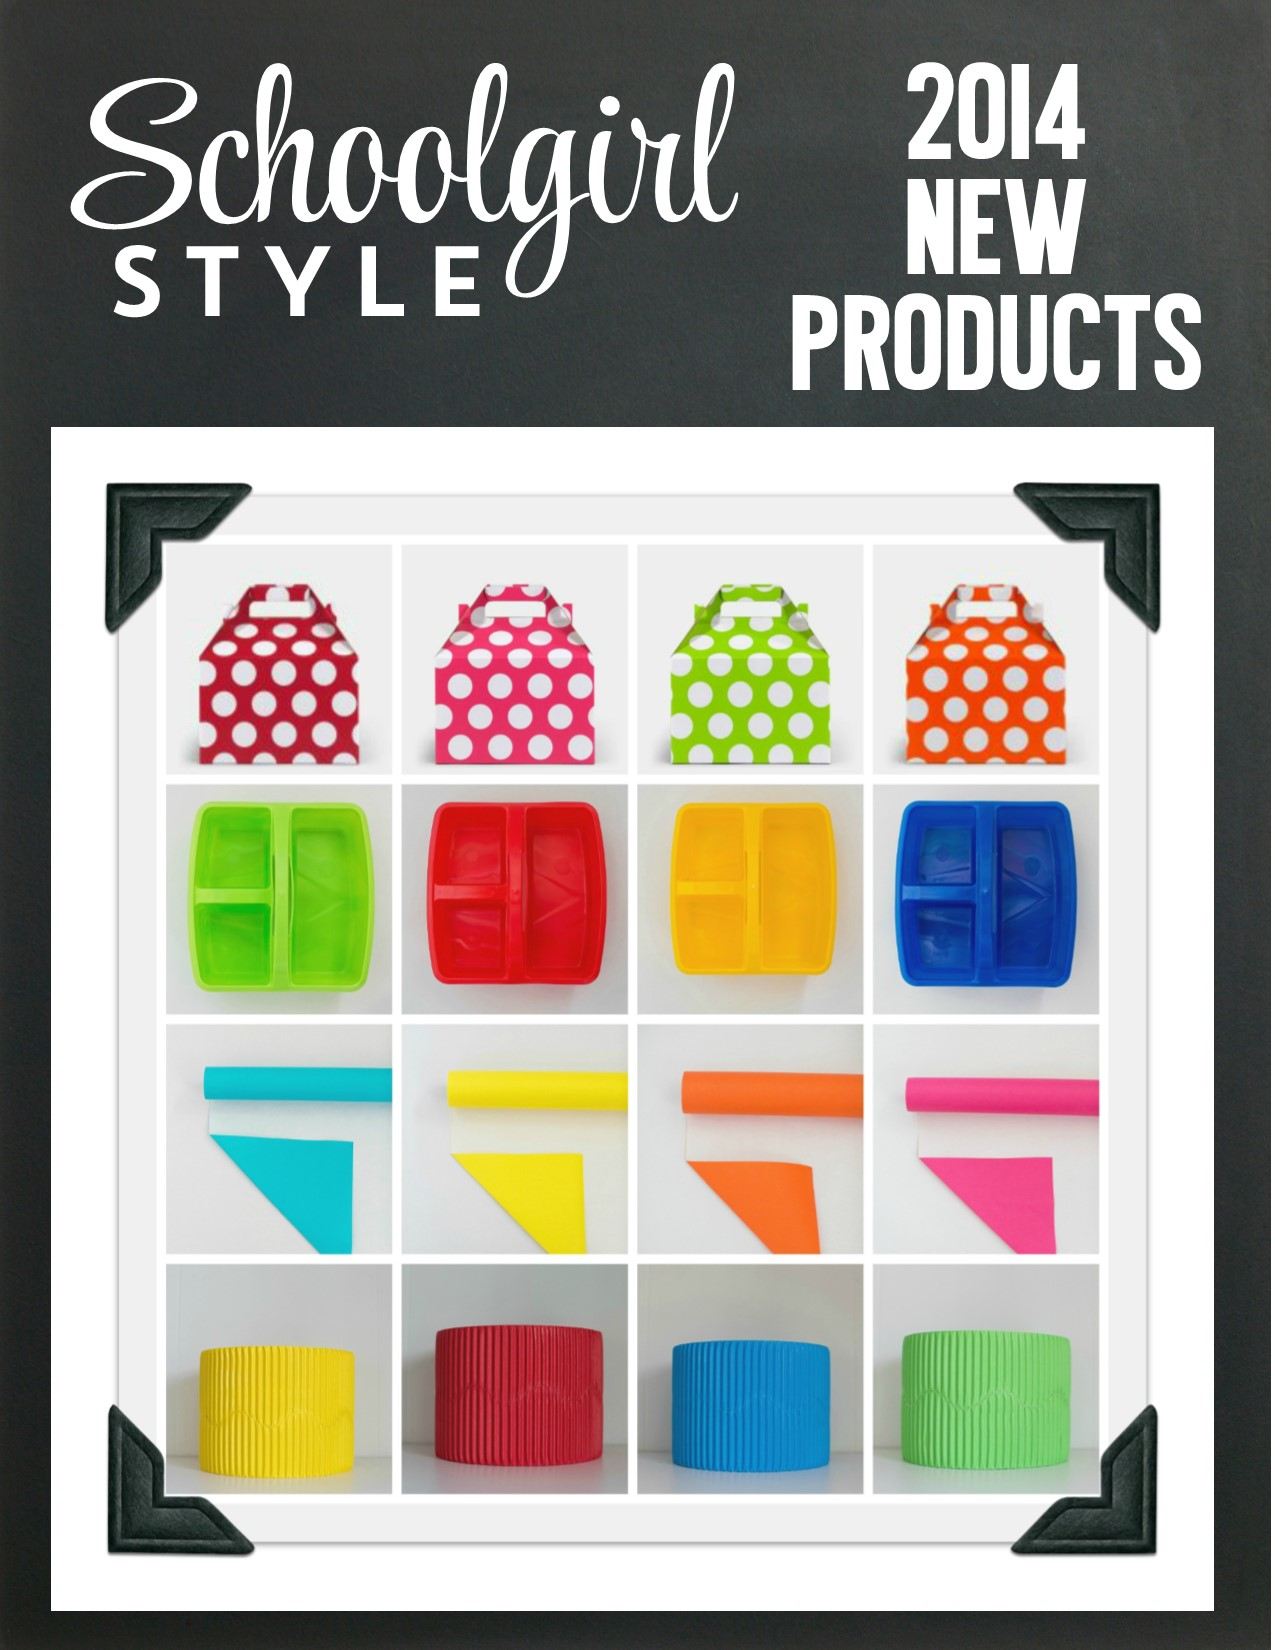 Classroom Decor Trends ~ New products by schoolgirl style